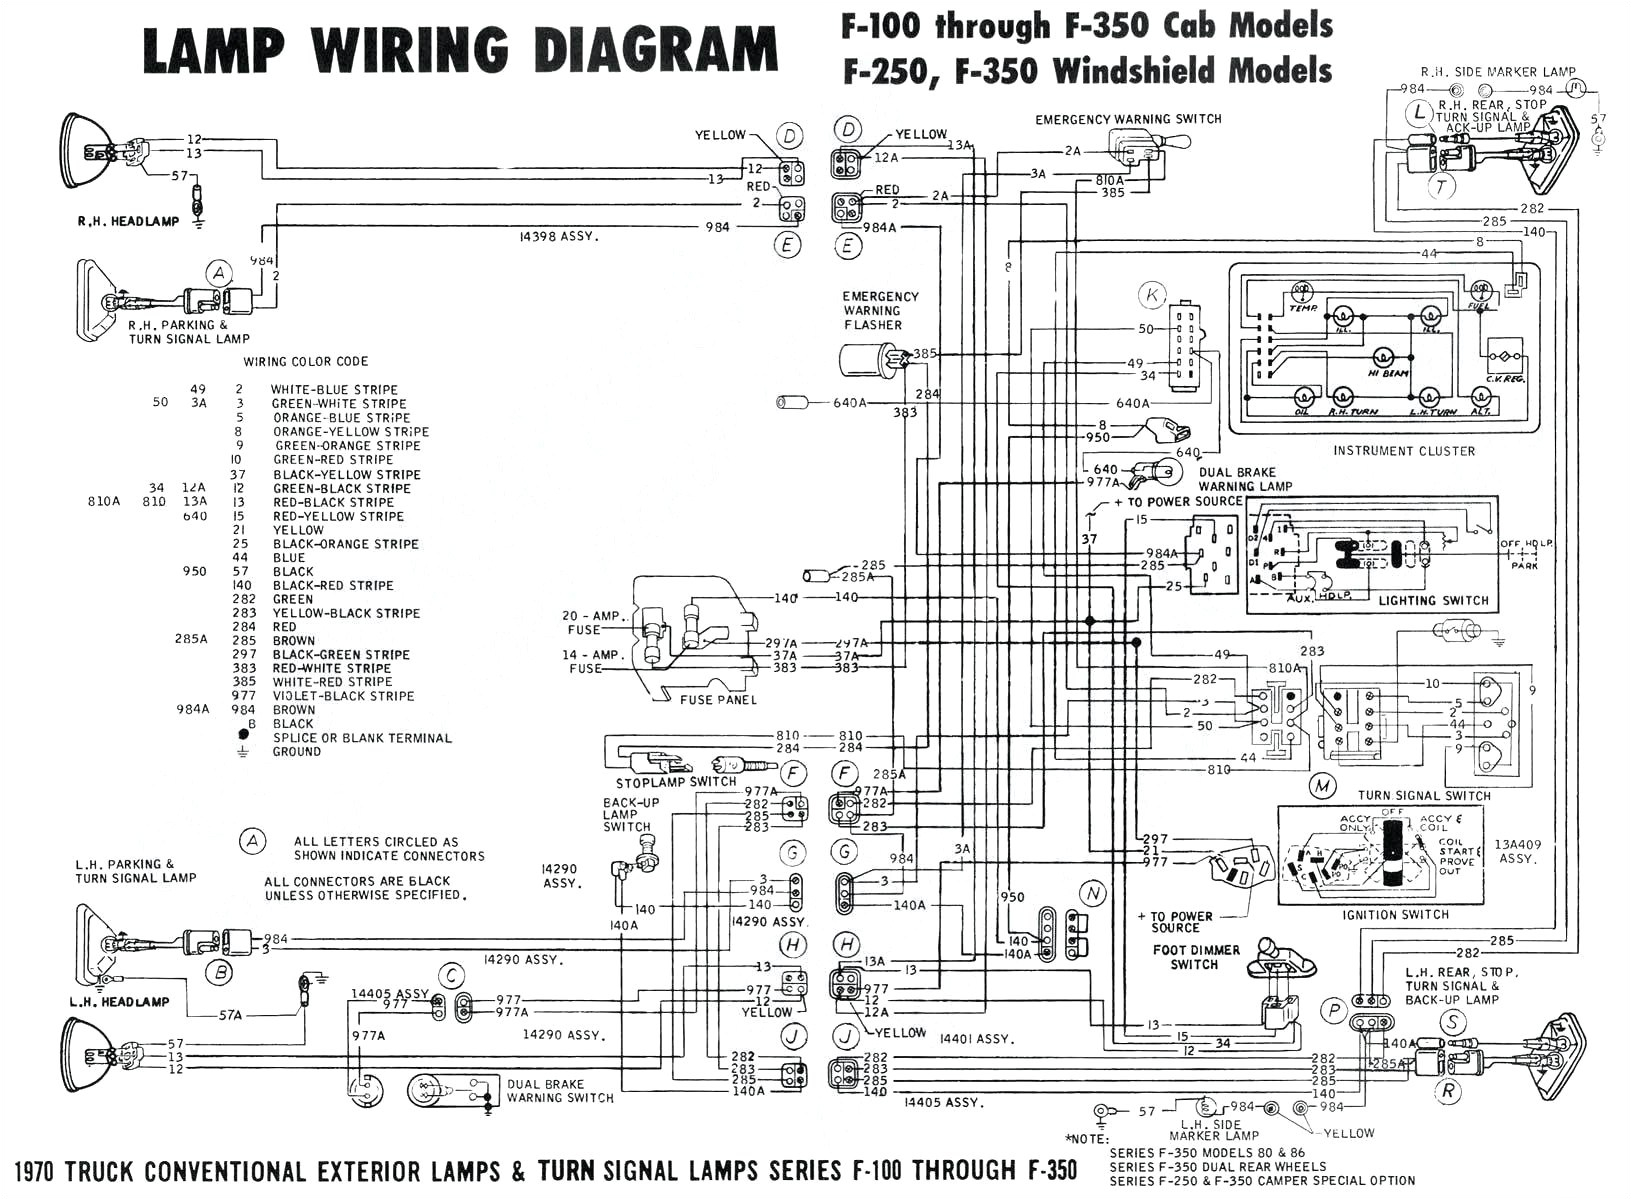 gm backup camera wiring diagram